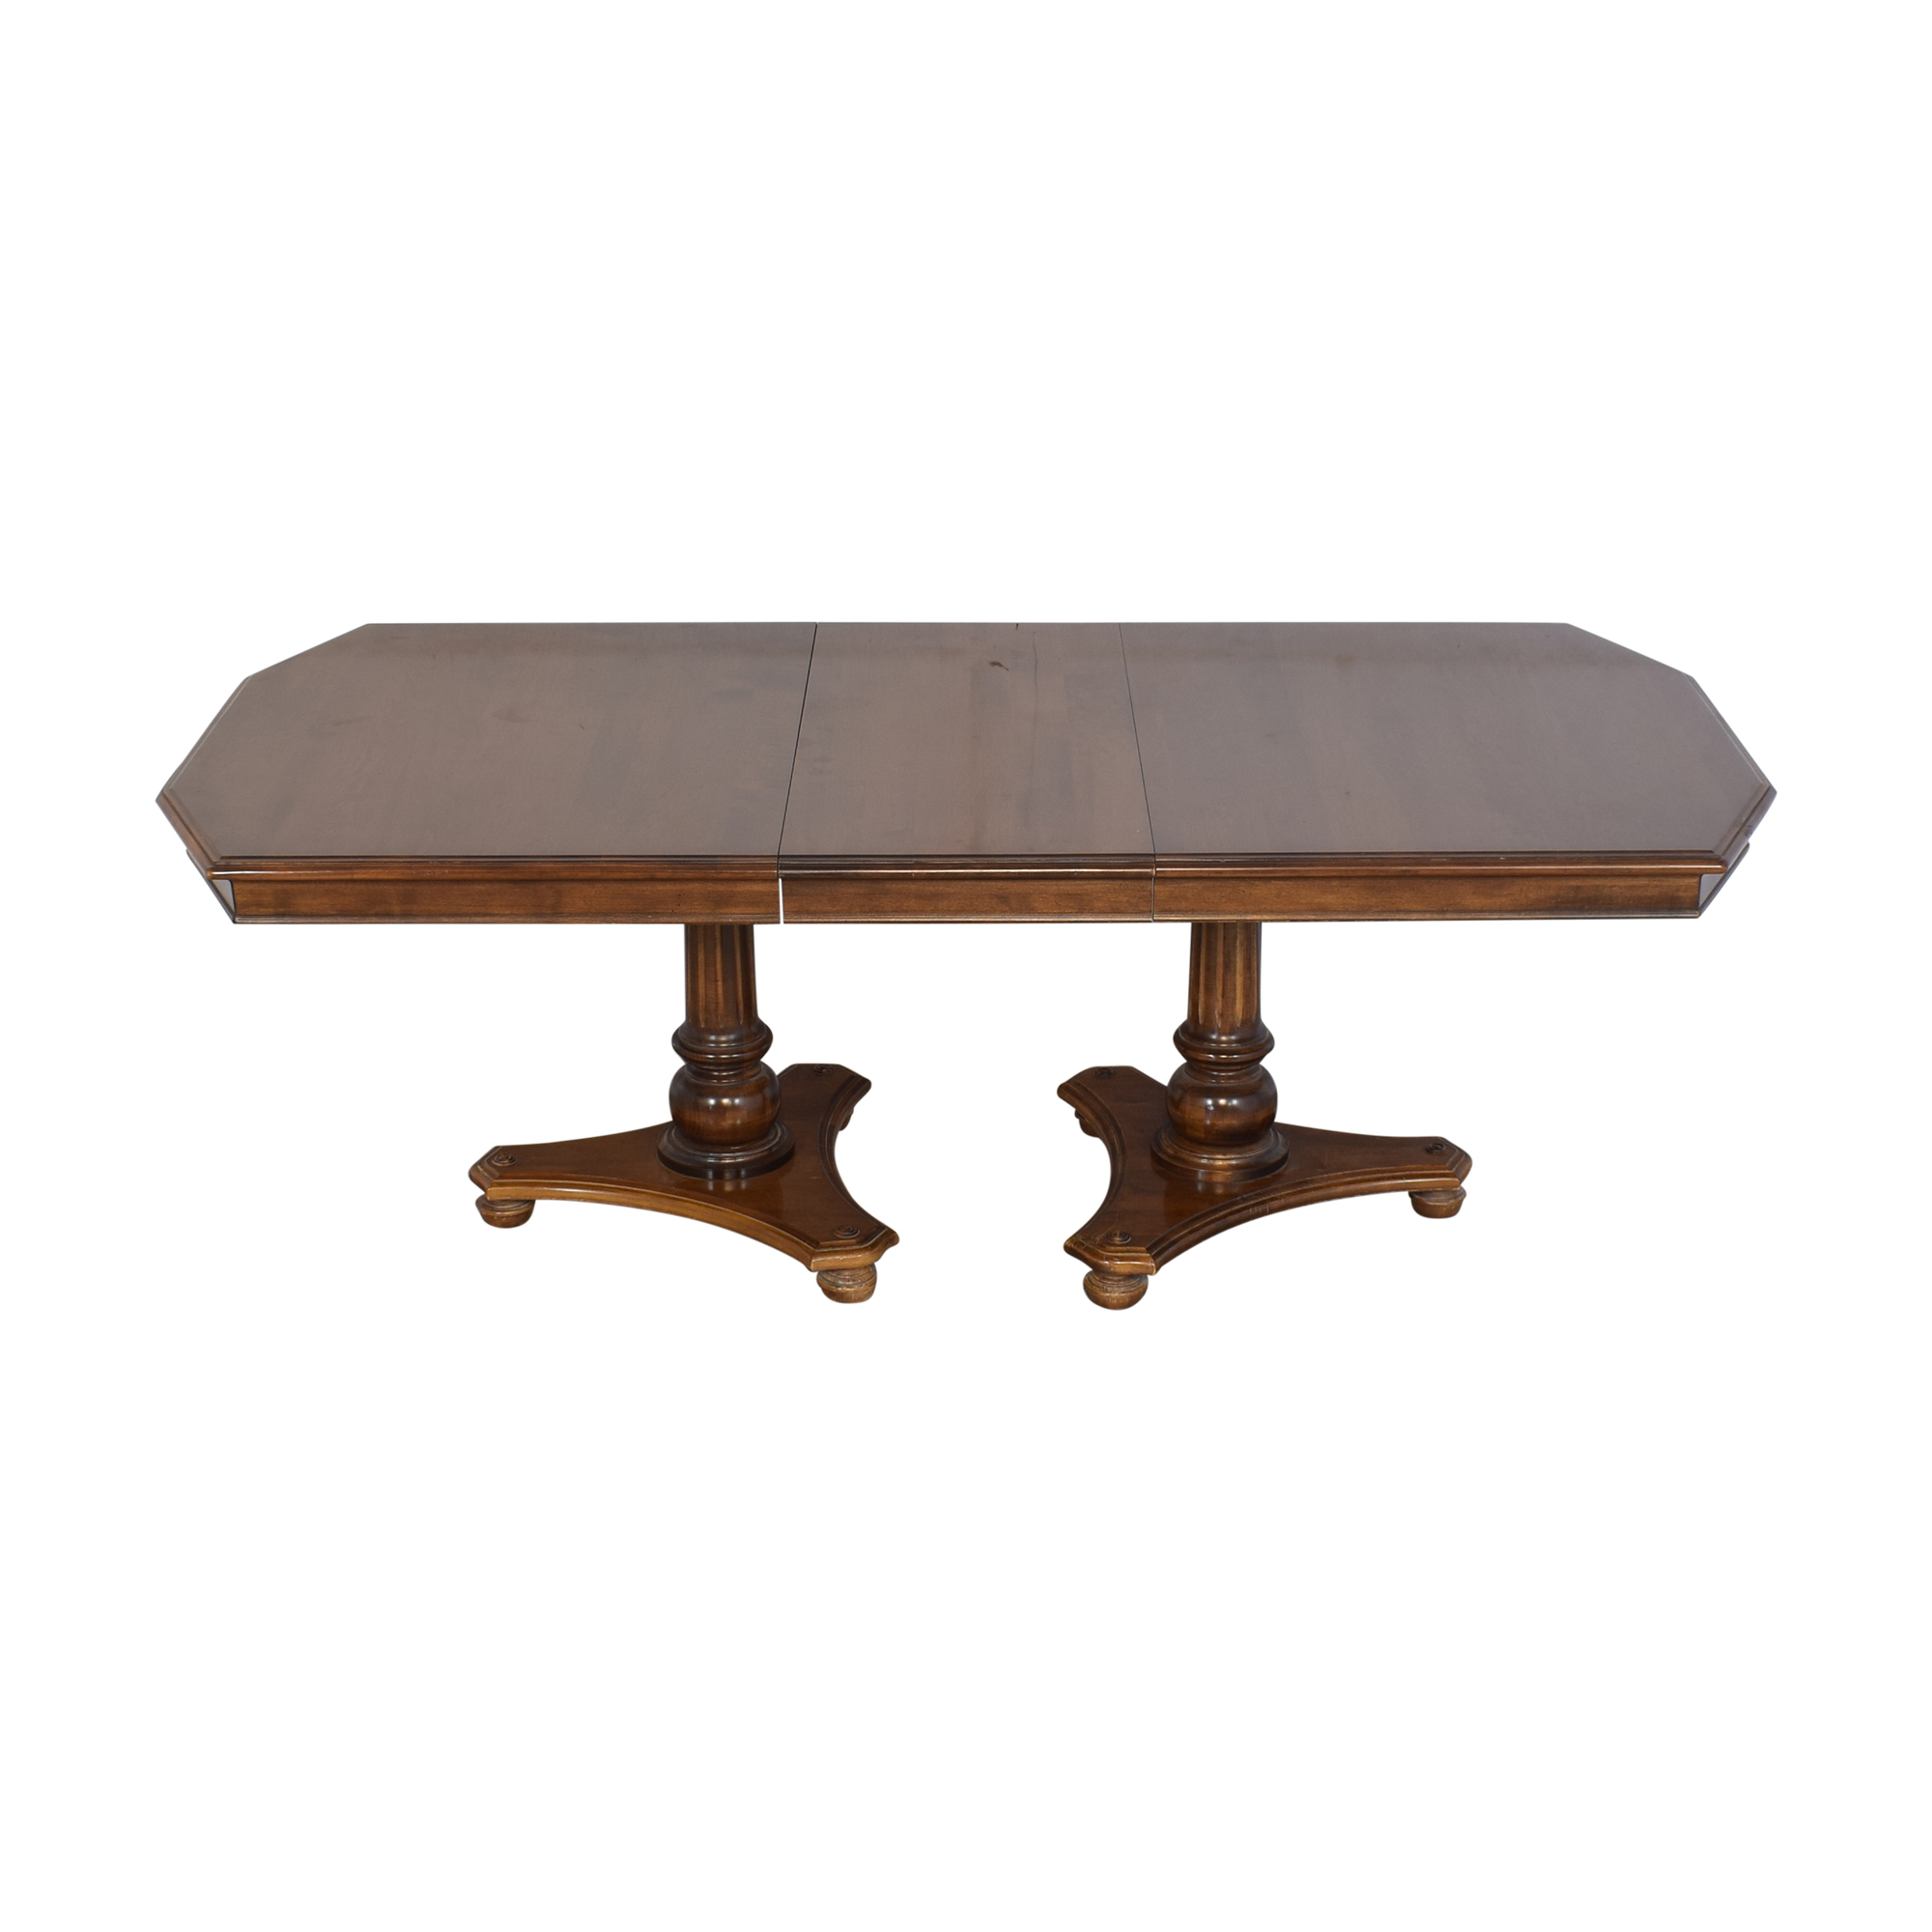 Ethan Allen Ethan Allen Extendable Double Pedestal Dining Table used